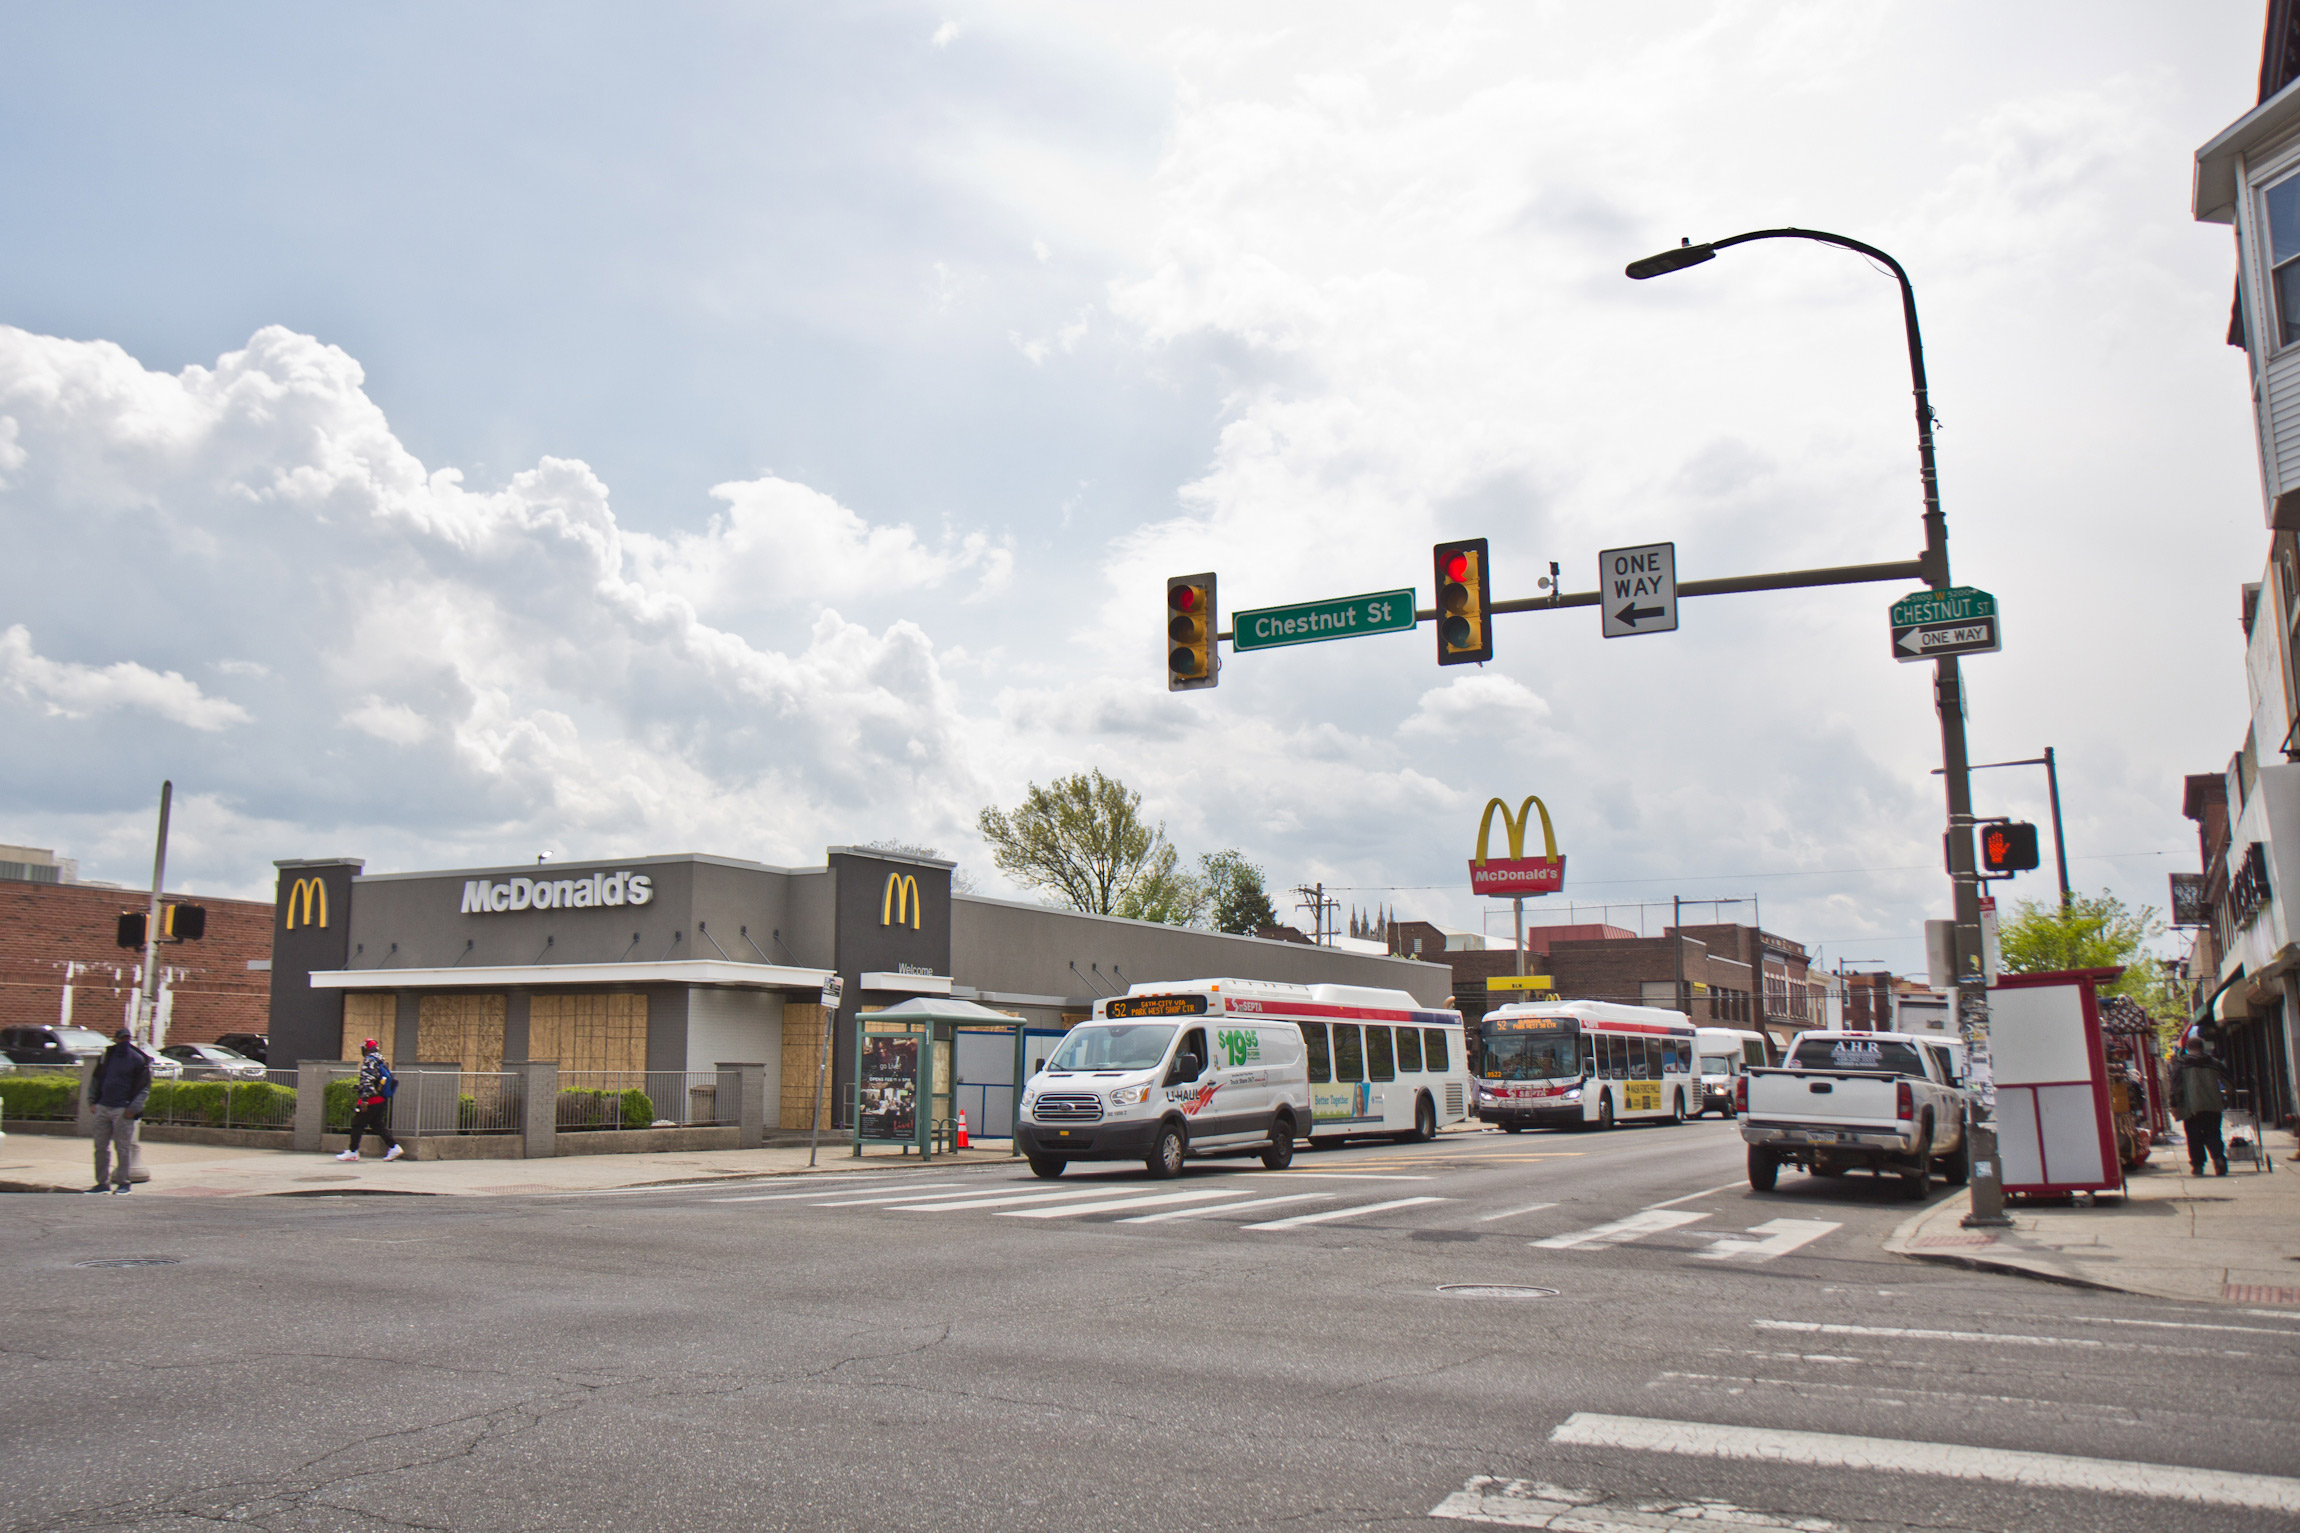 Shops on 52nd Street in West Philadelphia were mostly open on April 21, 2021, the day after the guilty verdict in the trial of Derek Chauvin was delivered. (Kimberly Paynter/WHYY)